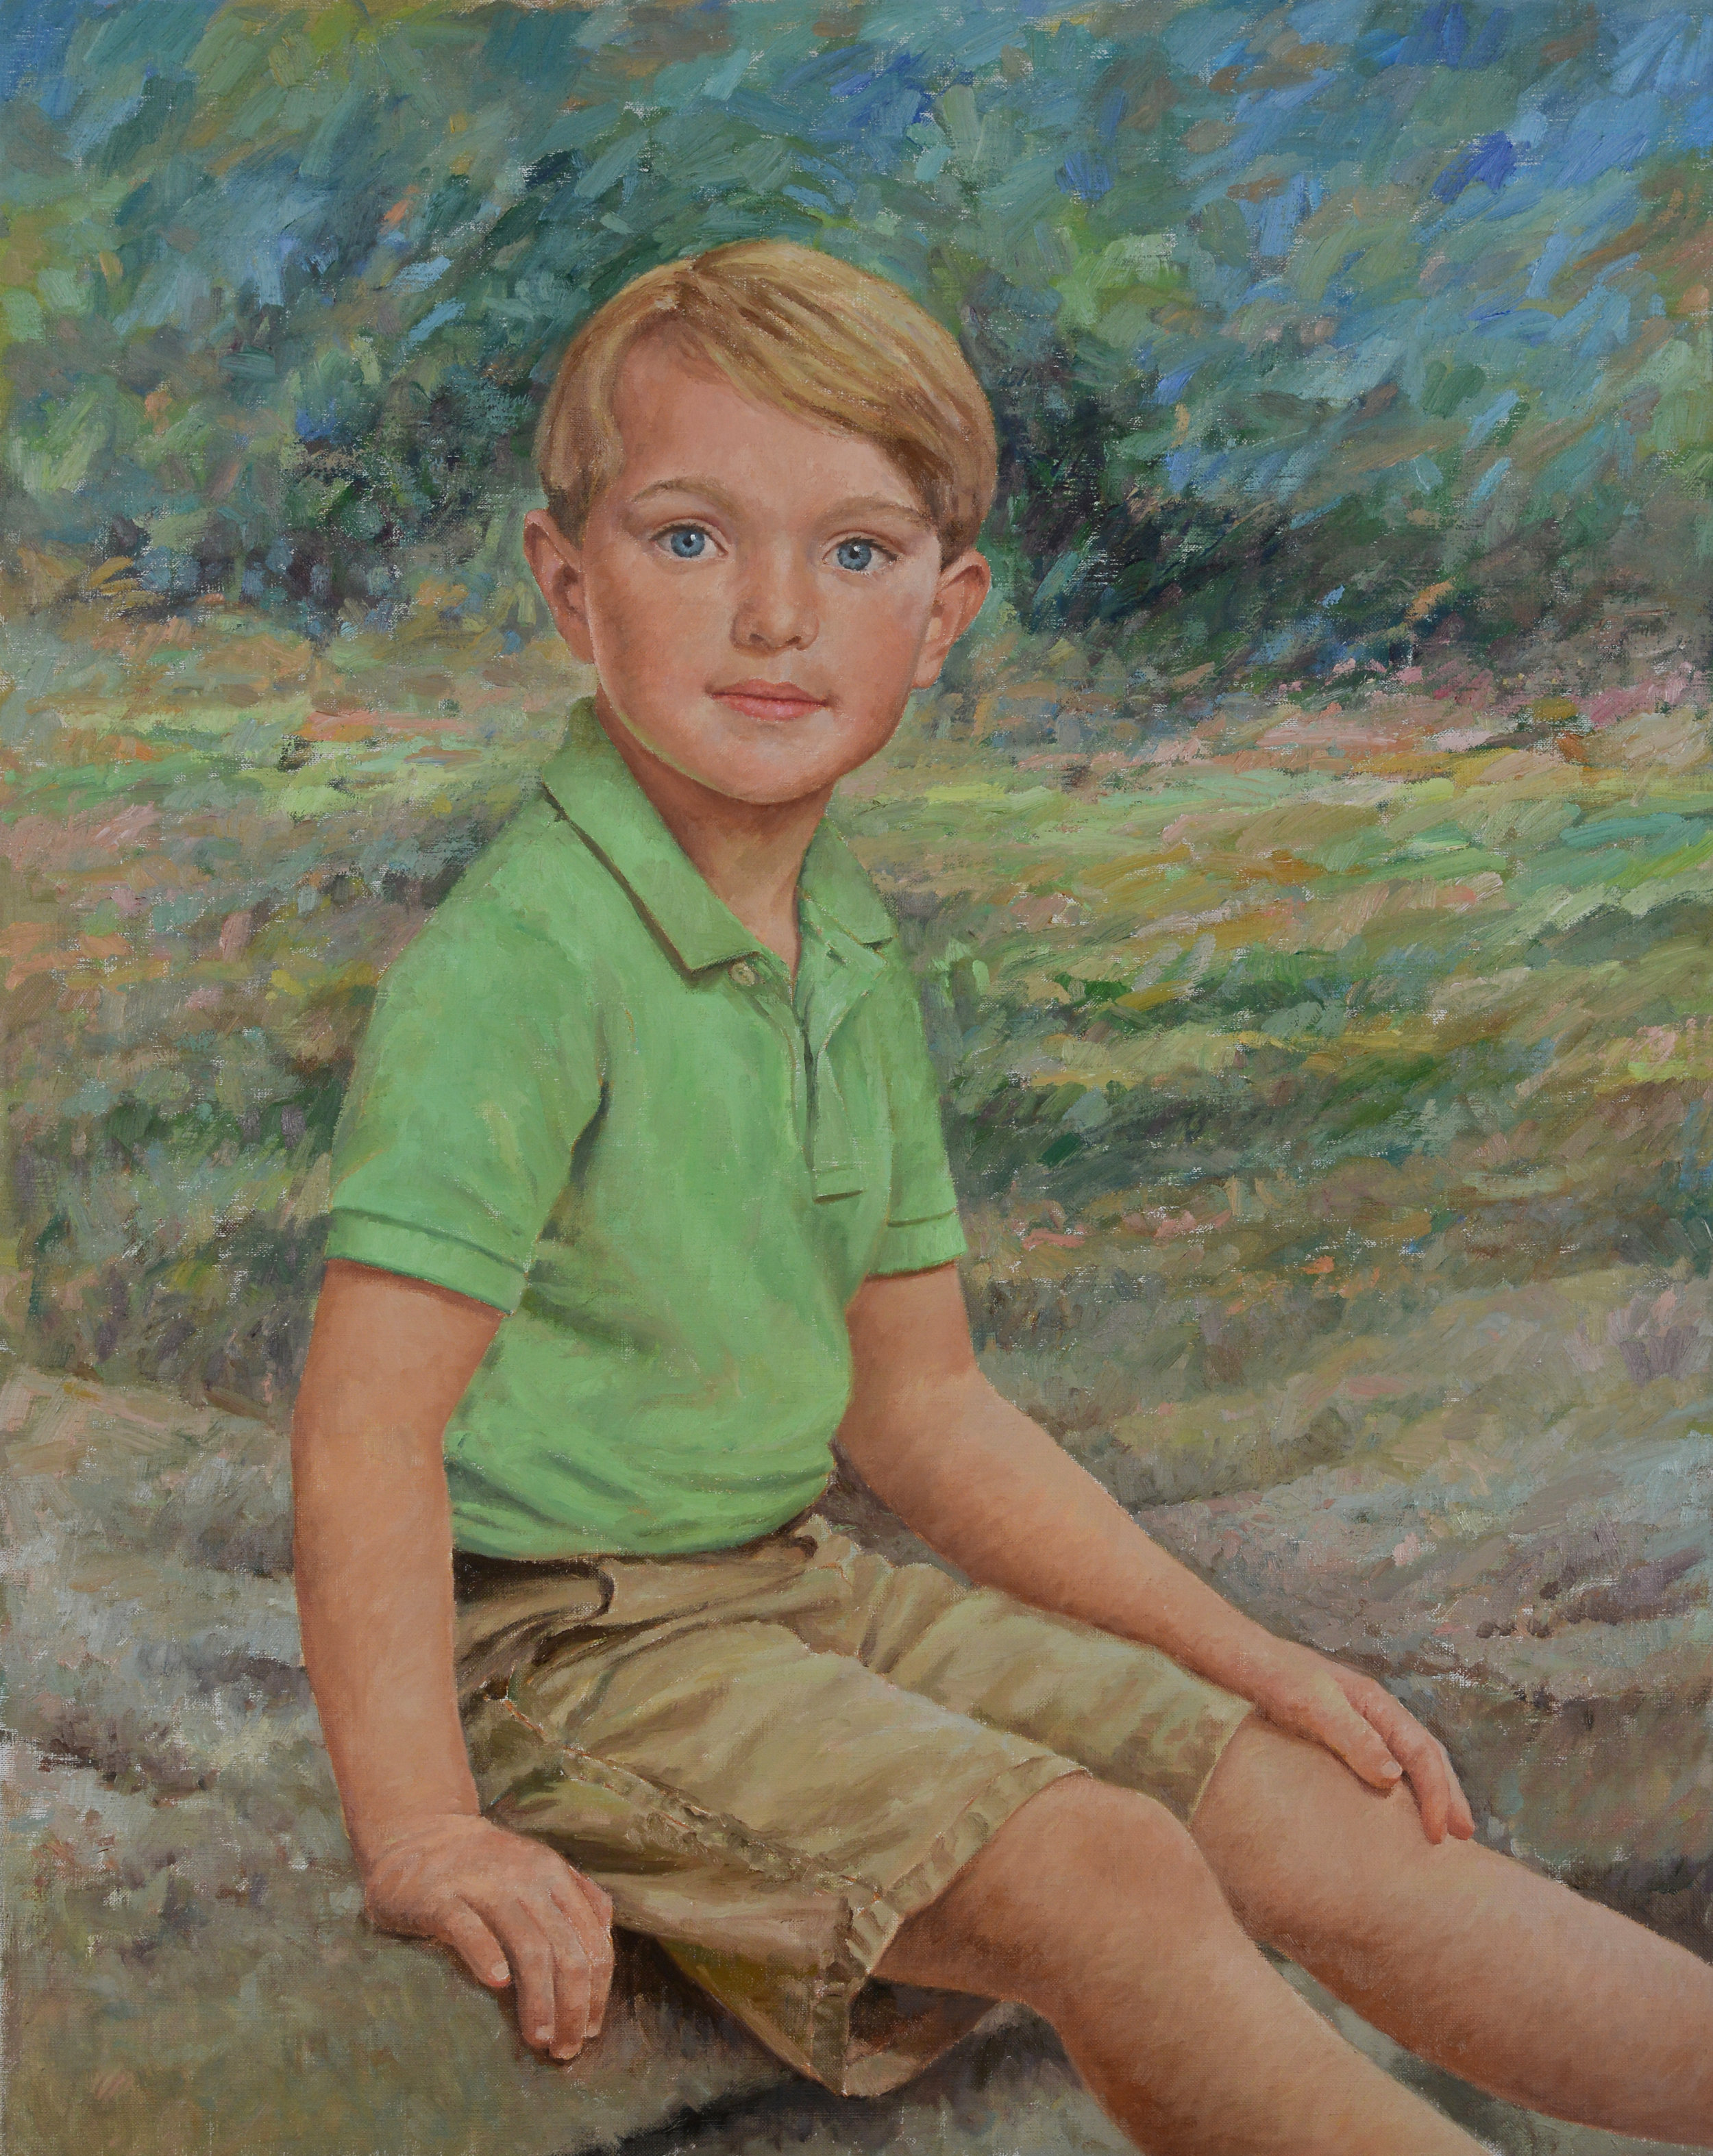 Boy with Green Shirt - 30x24